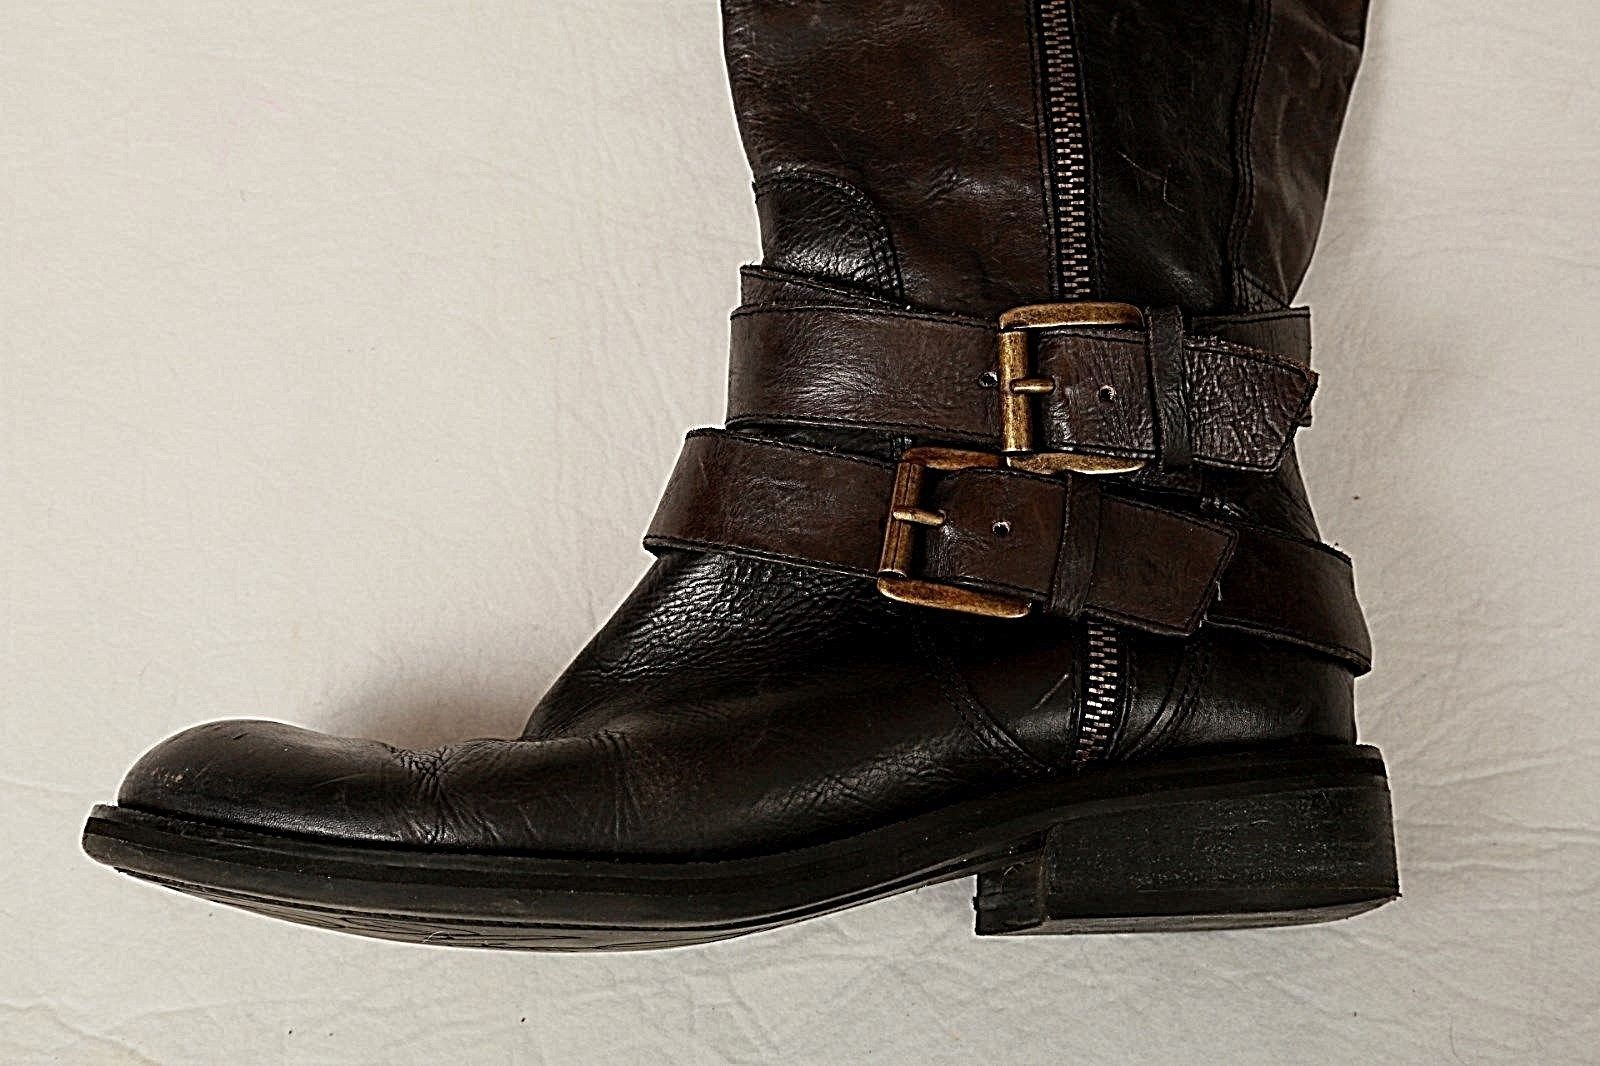 c35e570dc4f ENZO ANGIOLINI EASAYLEM WOMEN S BLACK LEATHER SIDE ZIP RIDING BUCKLE BOOTS  7.5 M